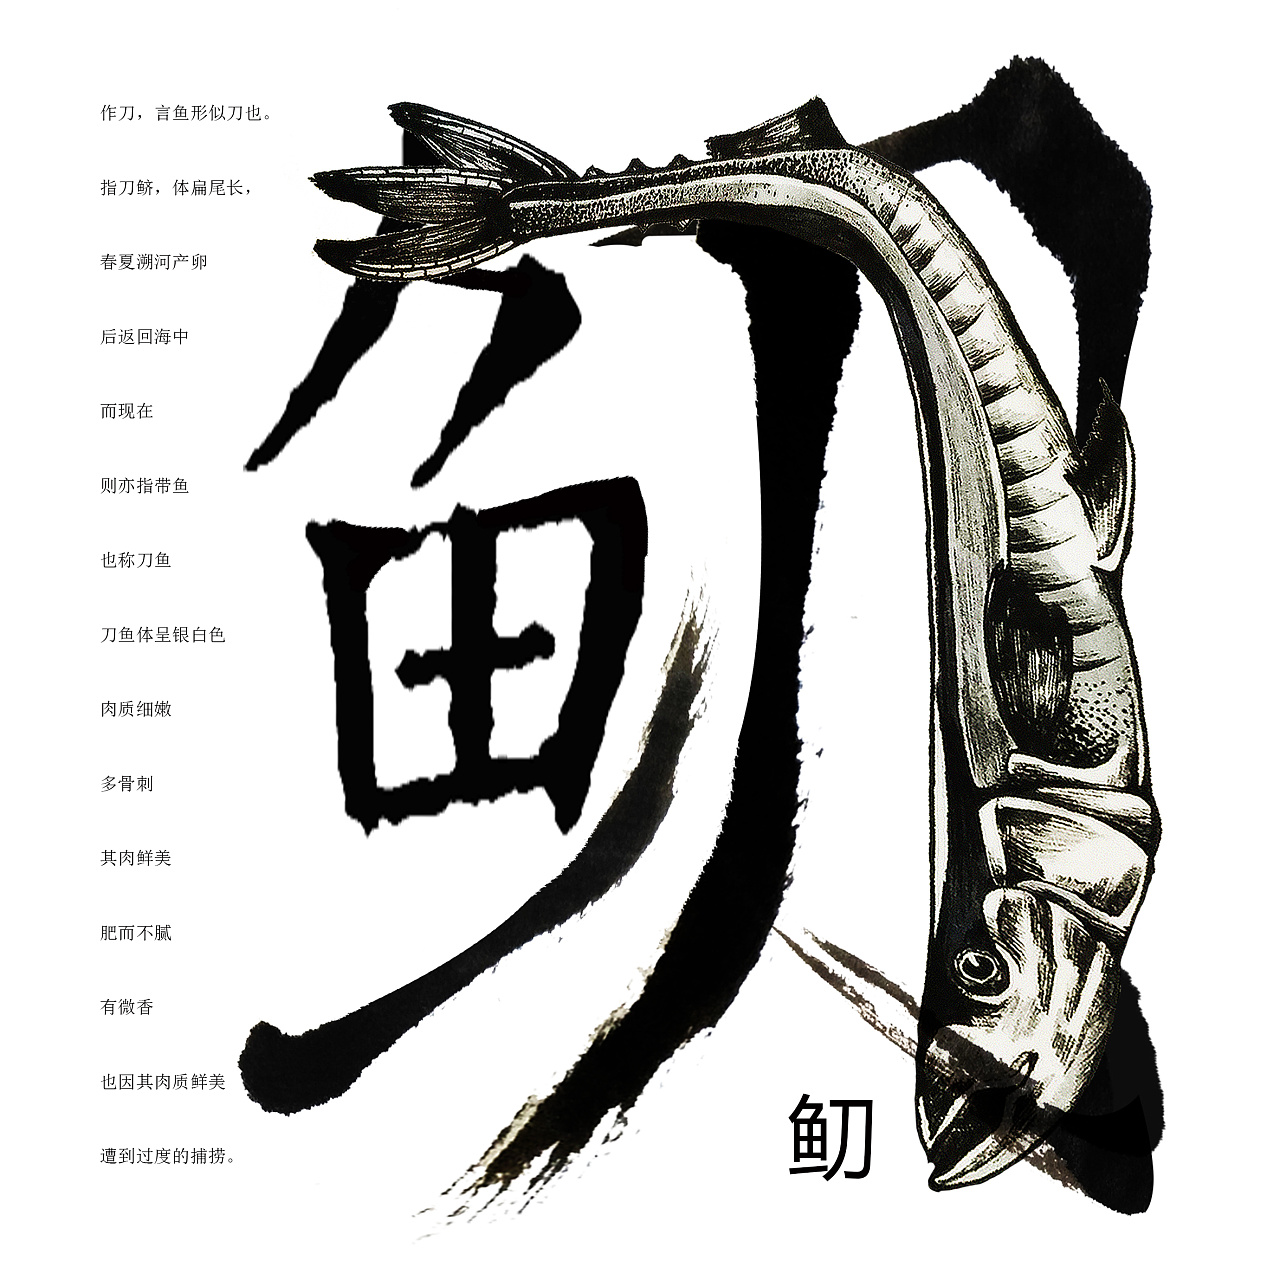 20P Chinese commercial font design collection #.42